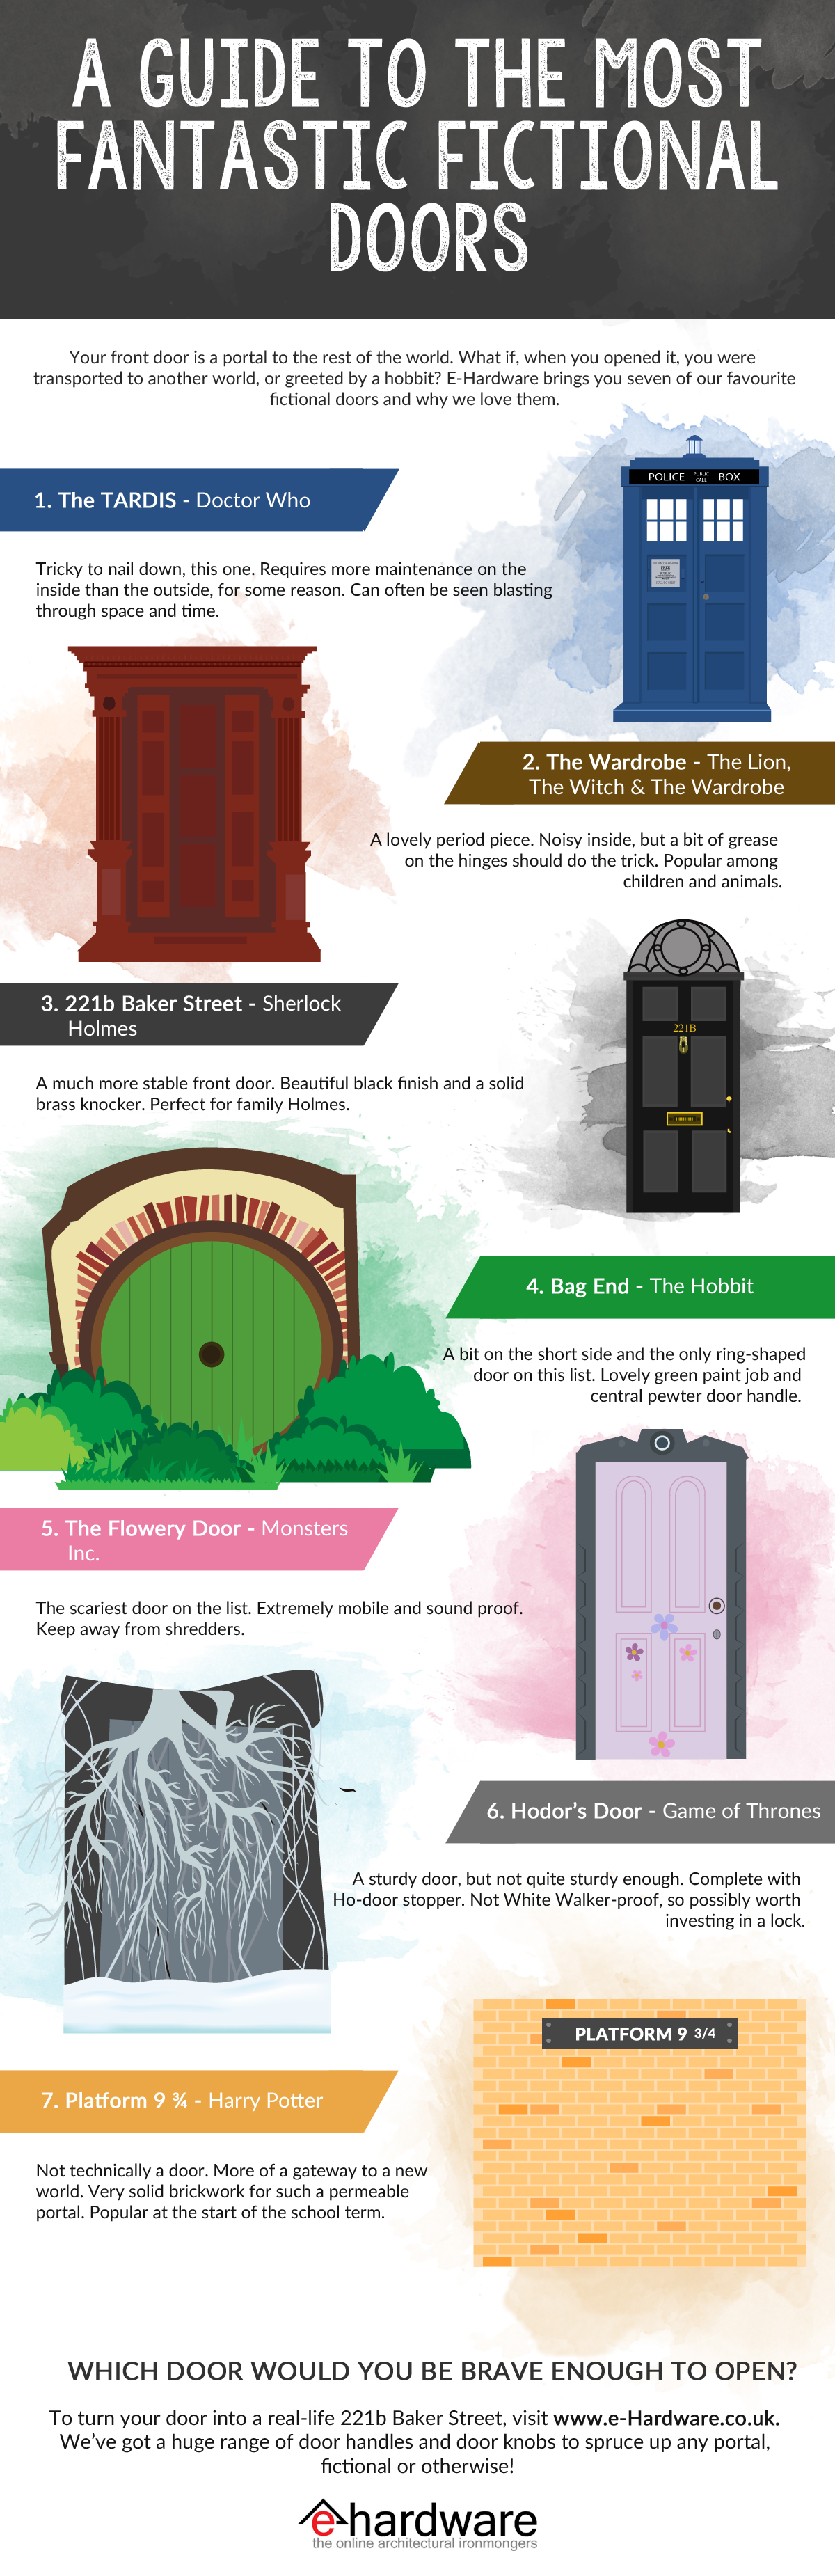 Infographic Guide to the Most Fantastic Fictional Doors - e-Hardware